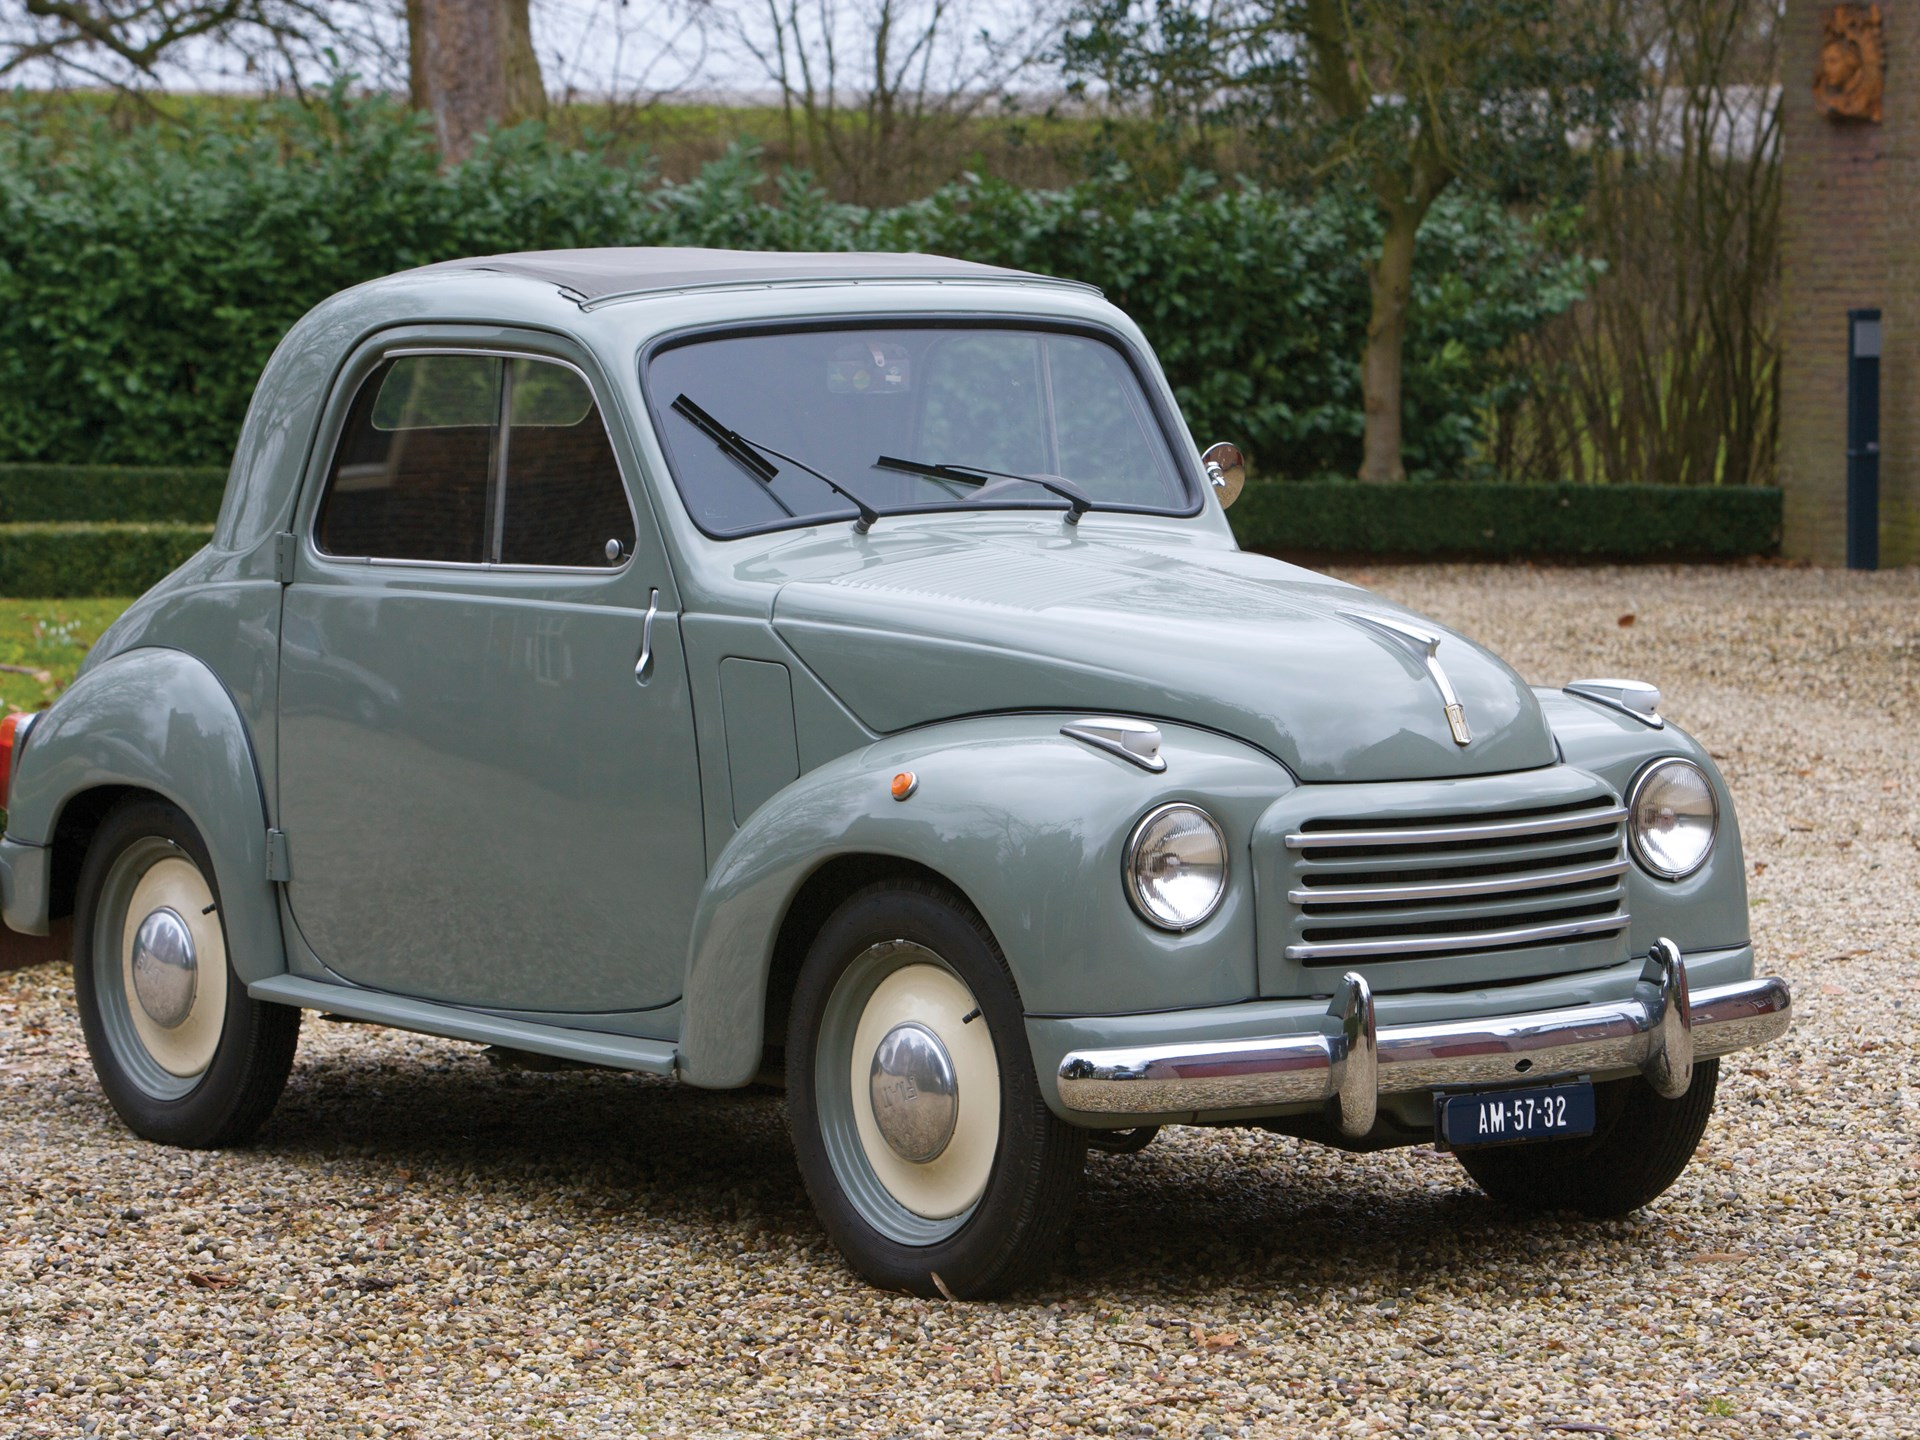 Rm Sothebys 1954 Fiat 500c Topolino Automobiles Of London 2009 500 For Sale